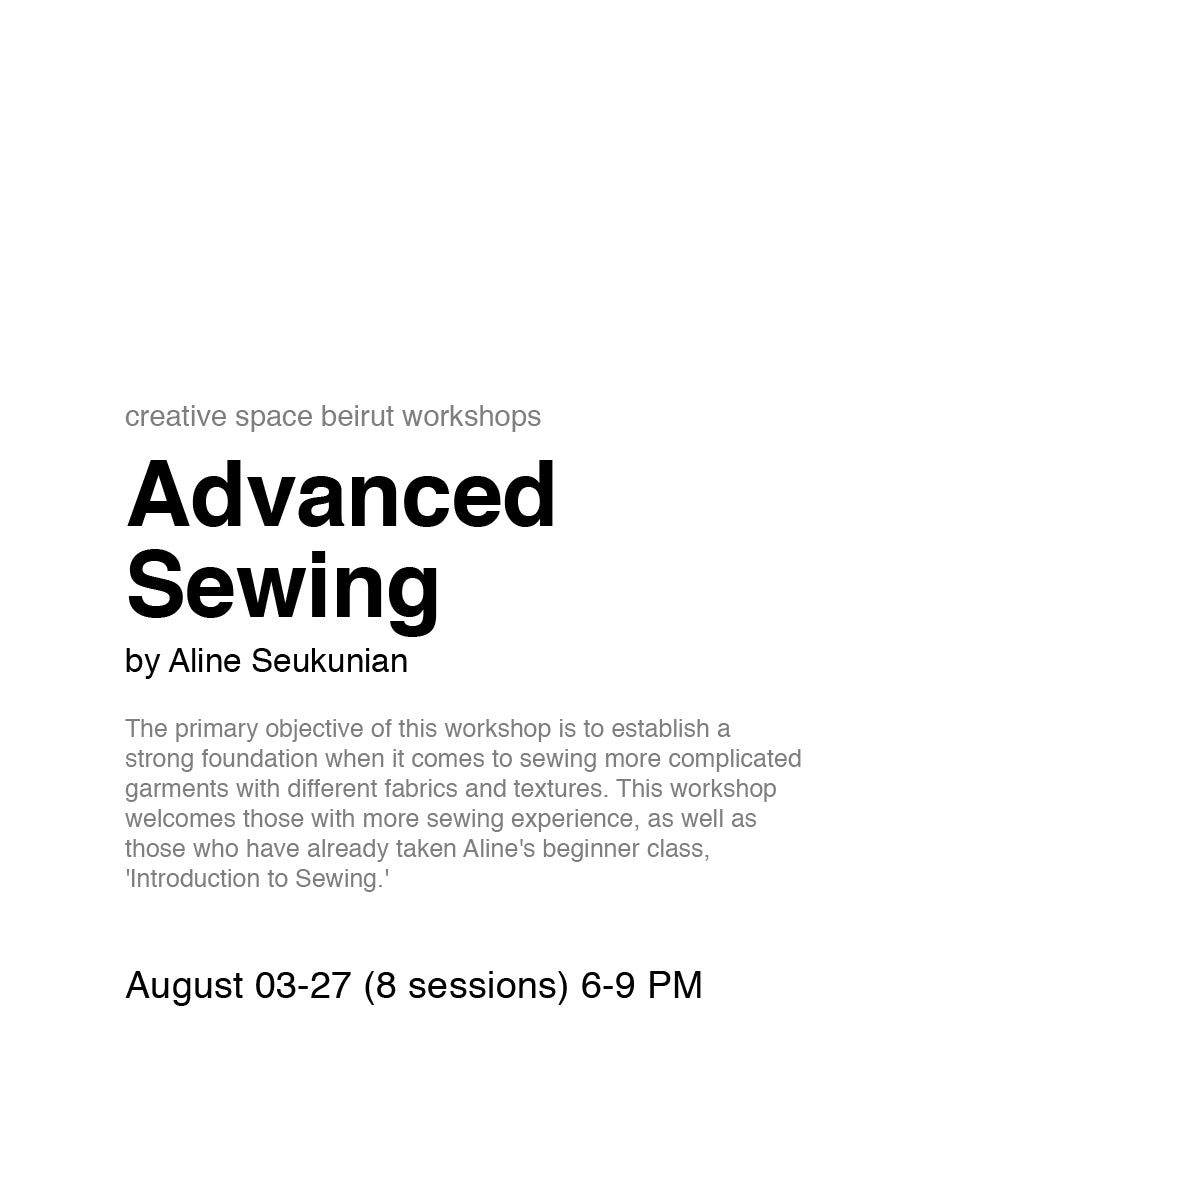 Advanced Sewing by Aline Seukunian